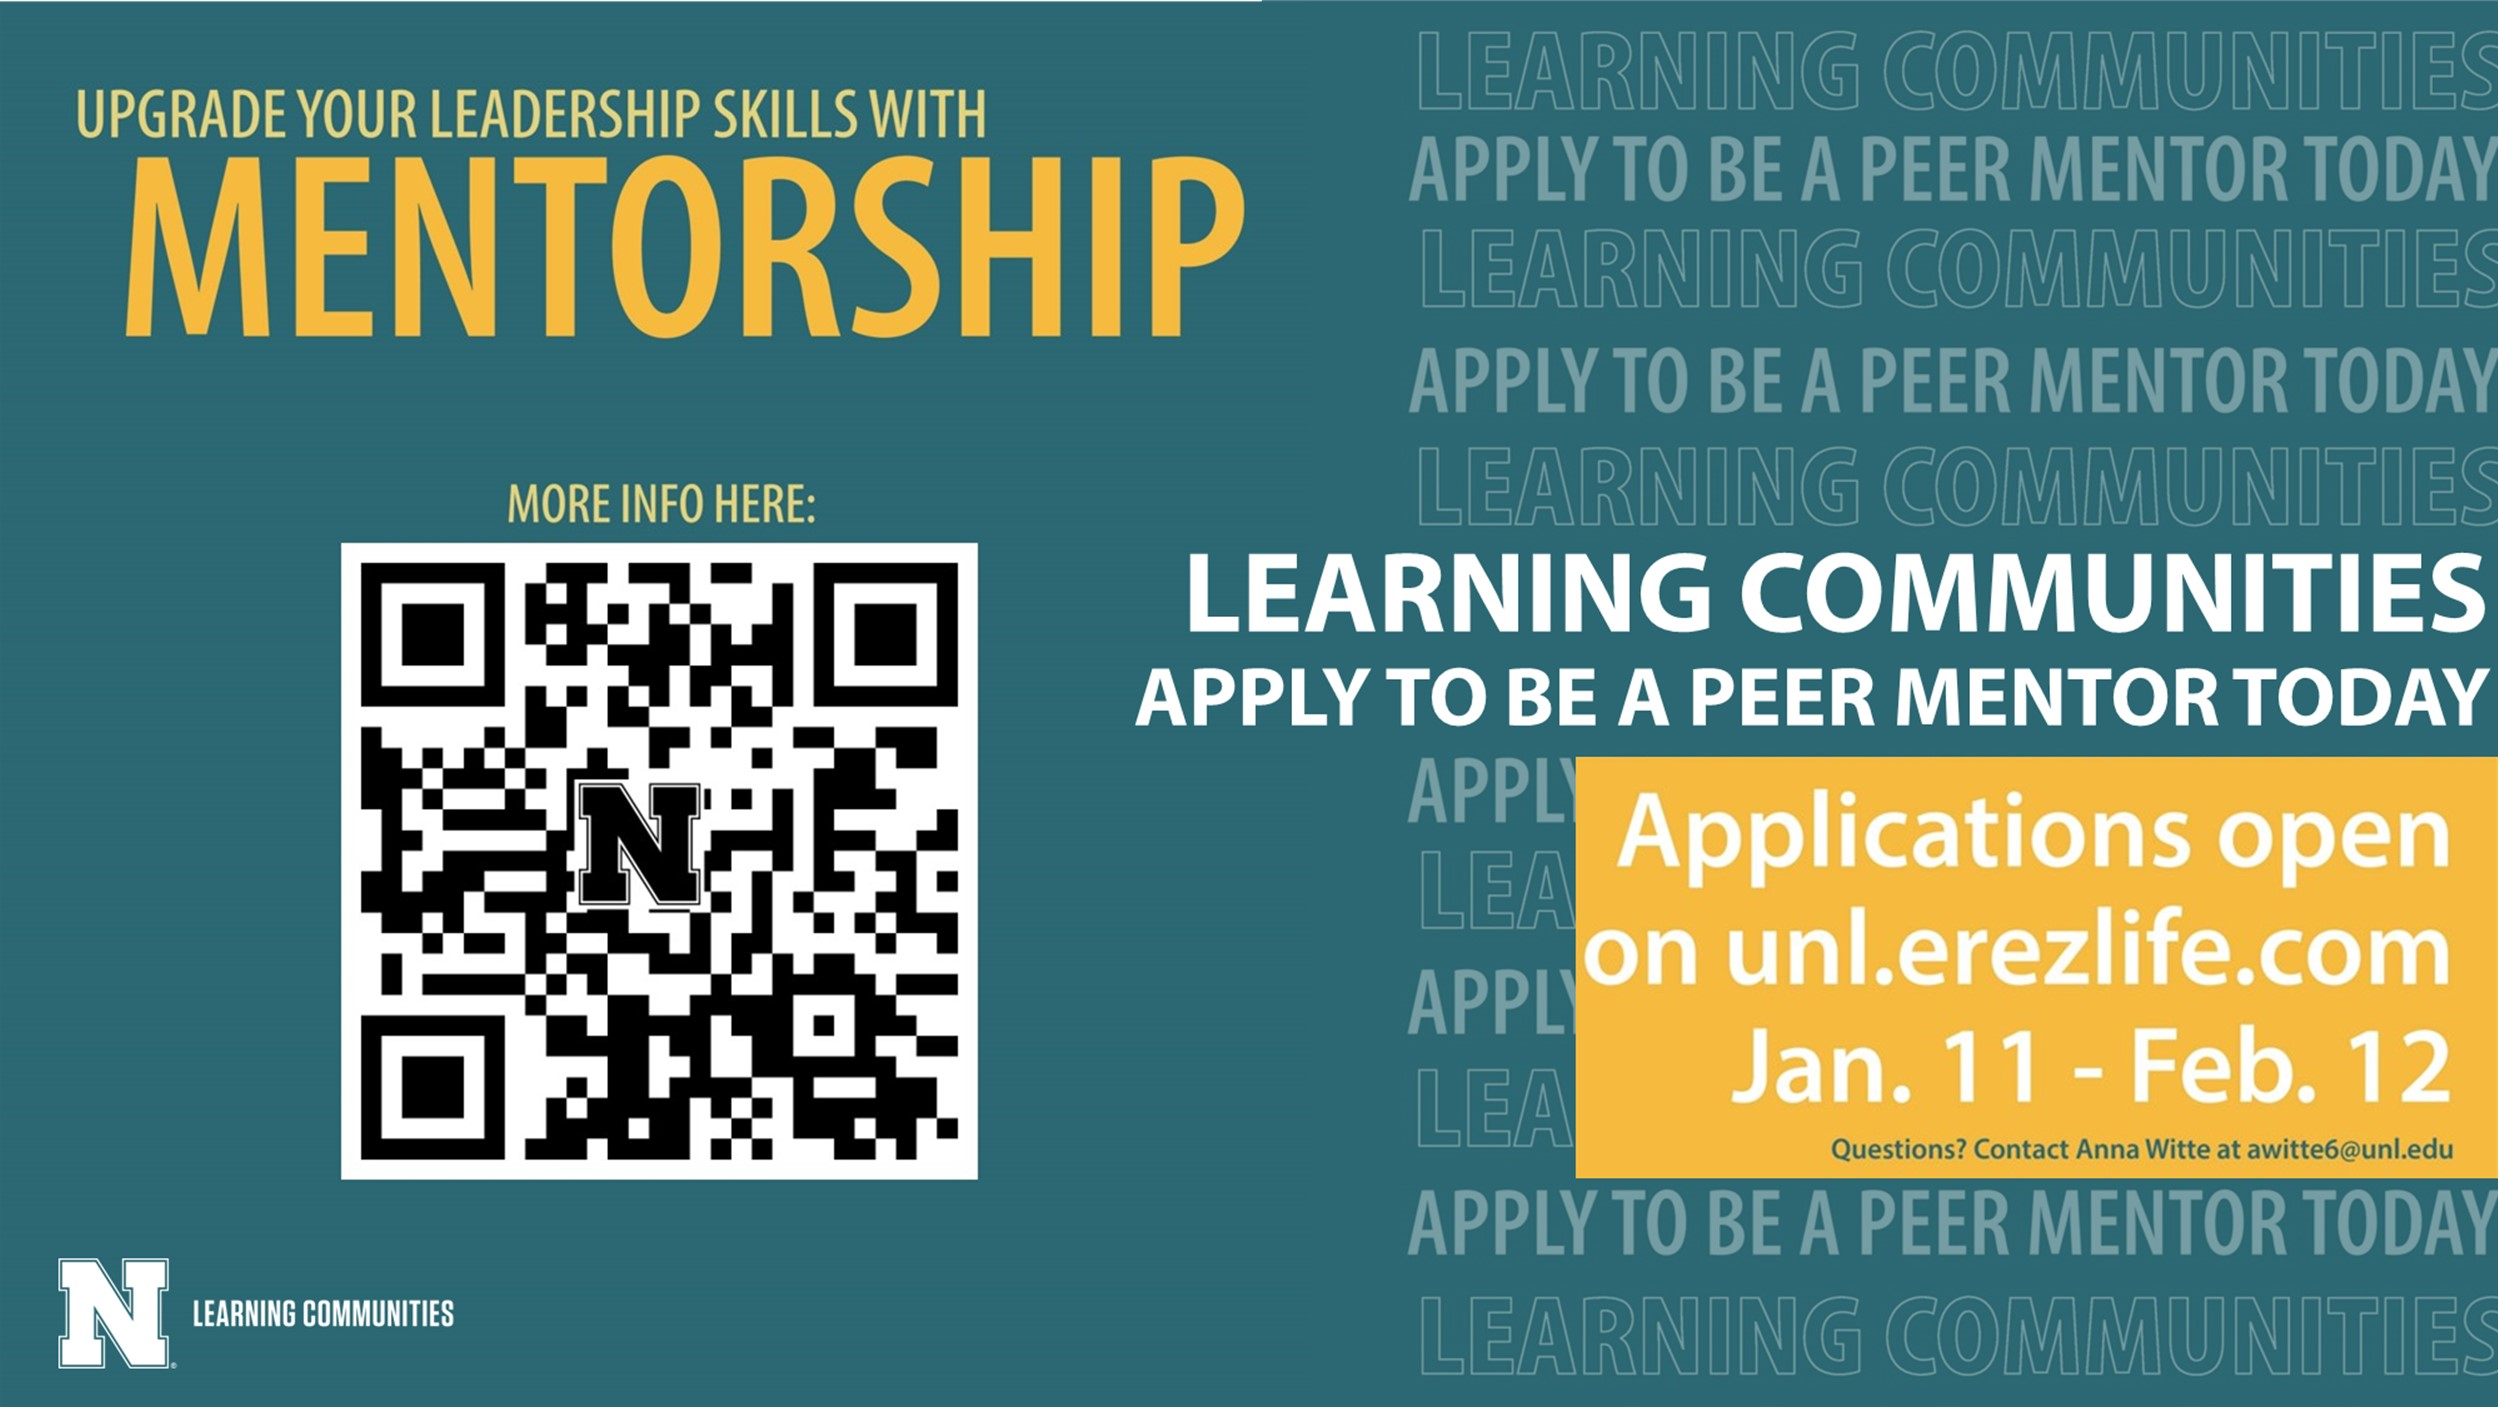 Sophomores, juniors, and seniors can apply for Learning Community Peer Mentor positions until February 12, 2021.